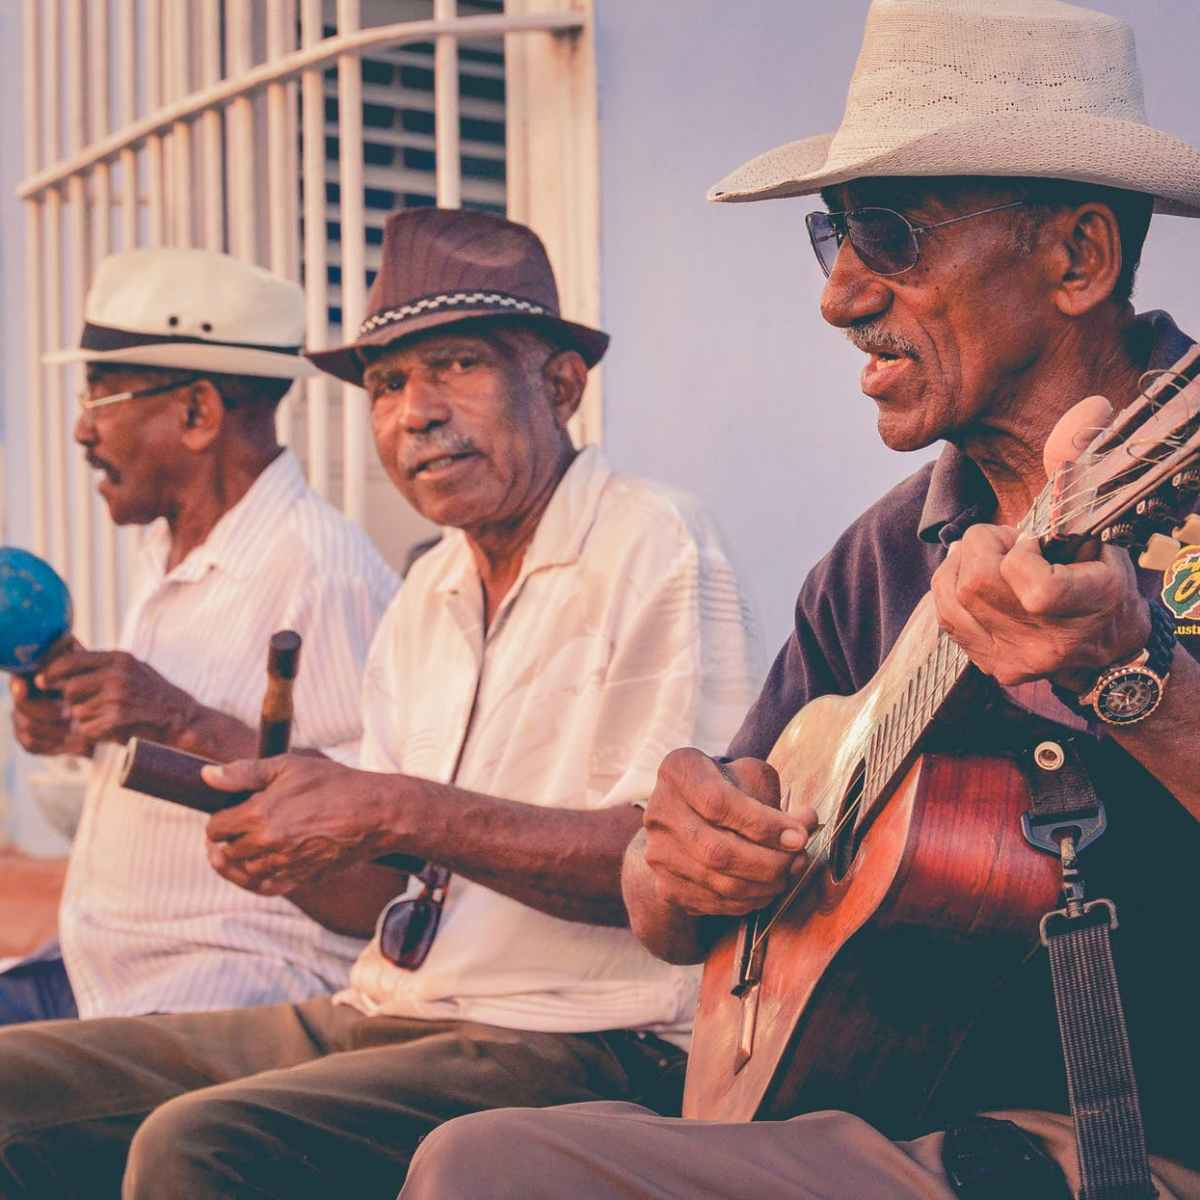 three men playing musical instruments